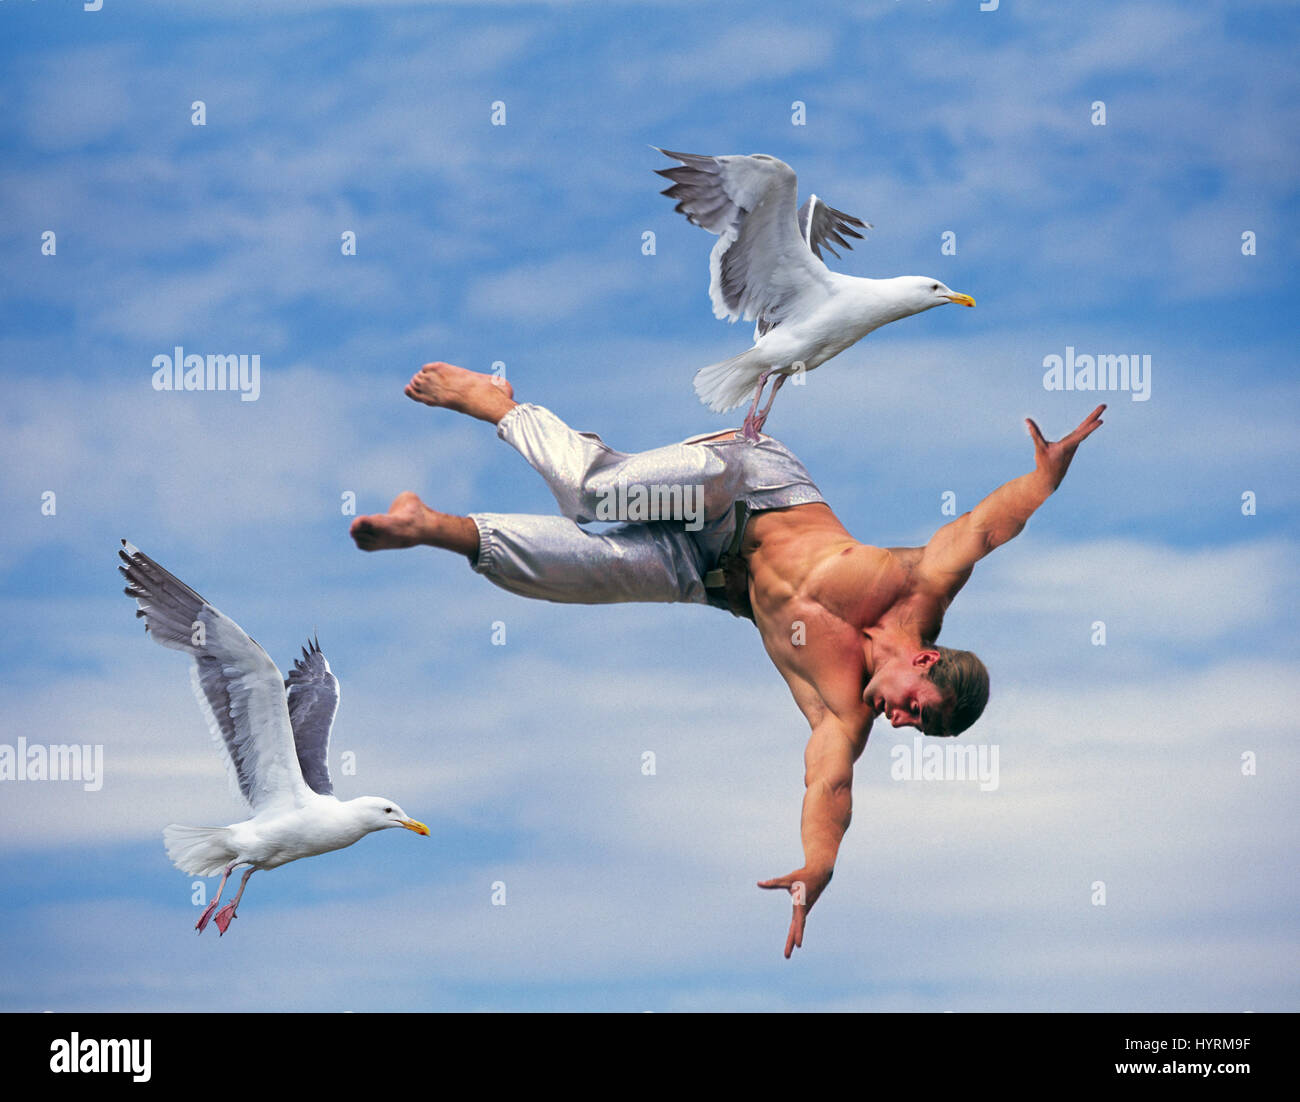 Is debt carrying you away? Carried away by debt?  This is for the birds! Digital composite - Stock Image